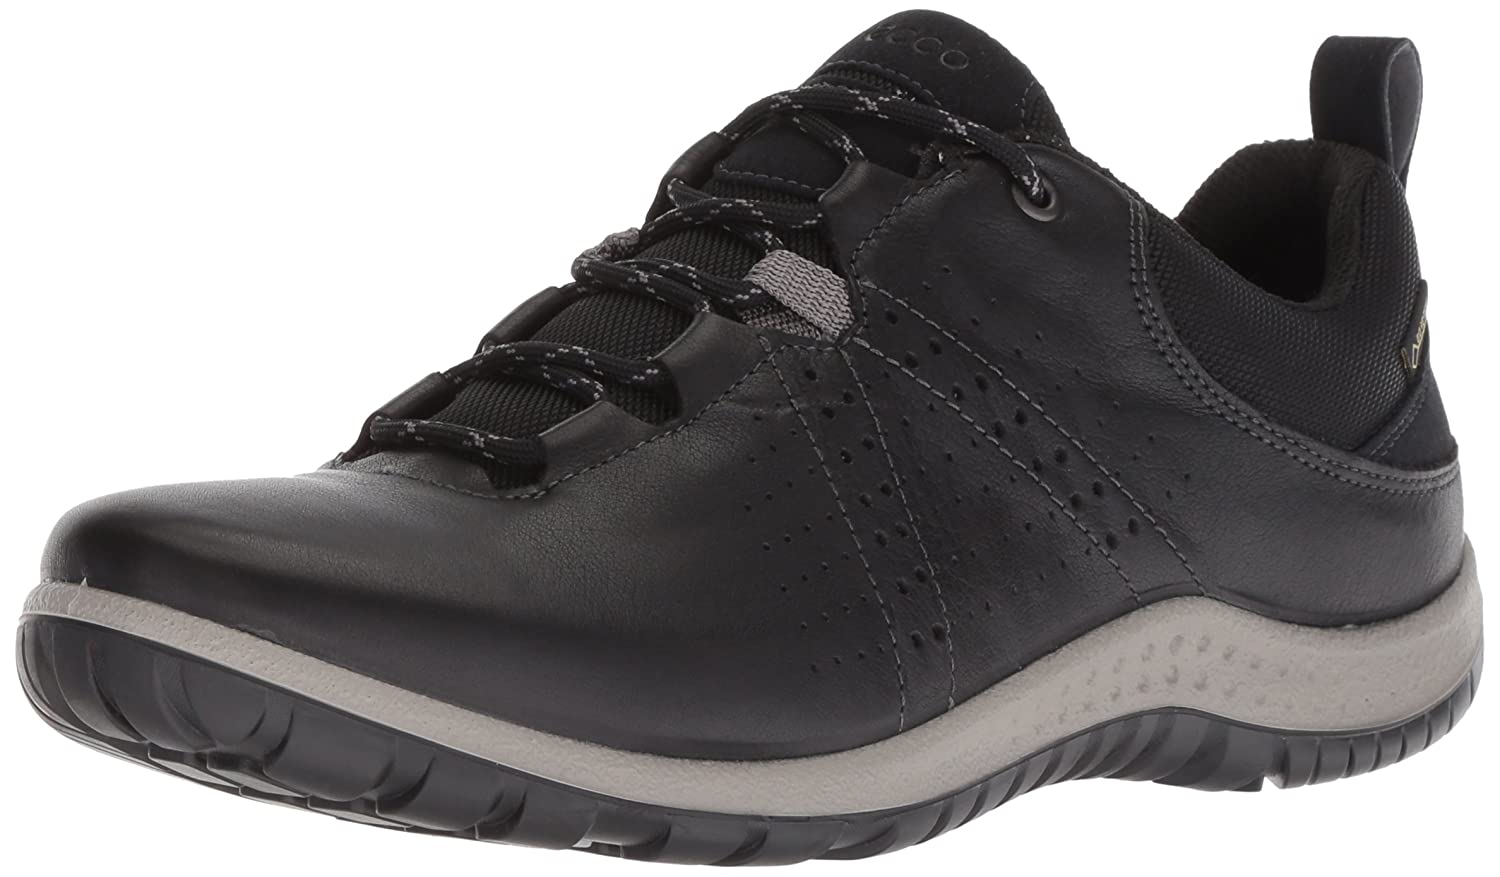 ECCO Women's Aspina Low Hiking Shoe B076ZXSJPS 37 M EU (6-6.5 US)|Black/Black